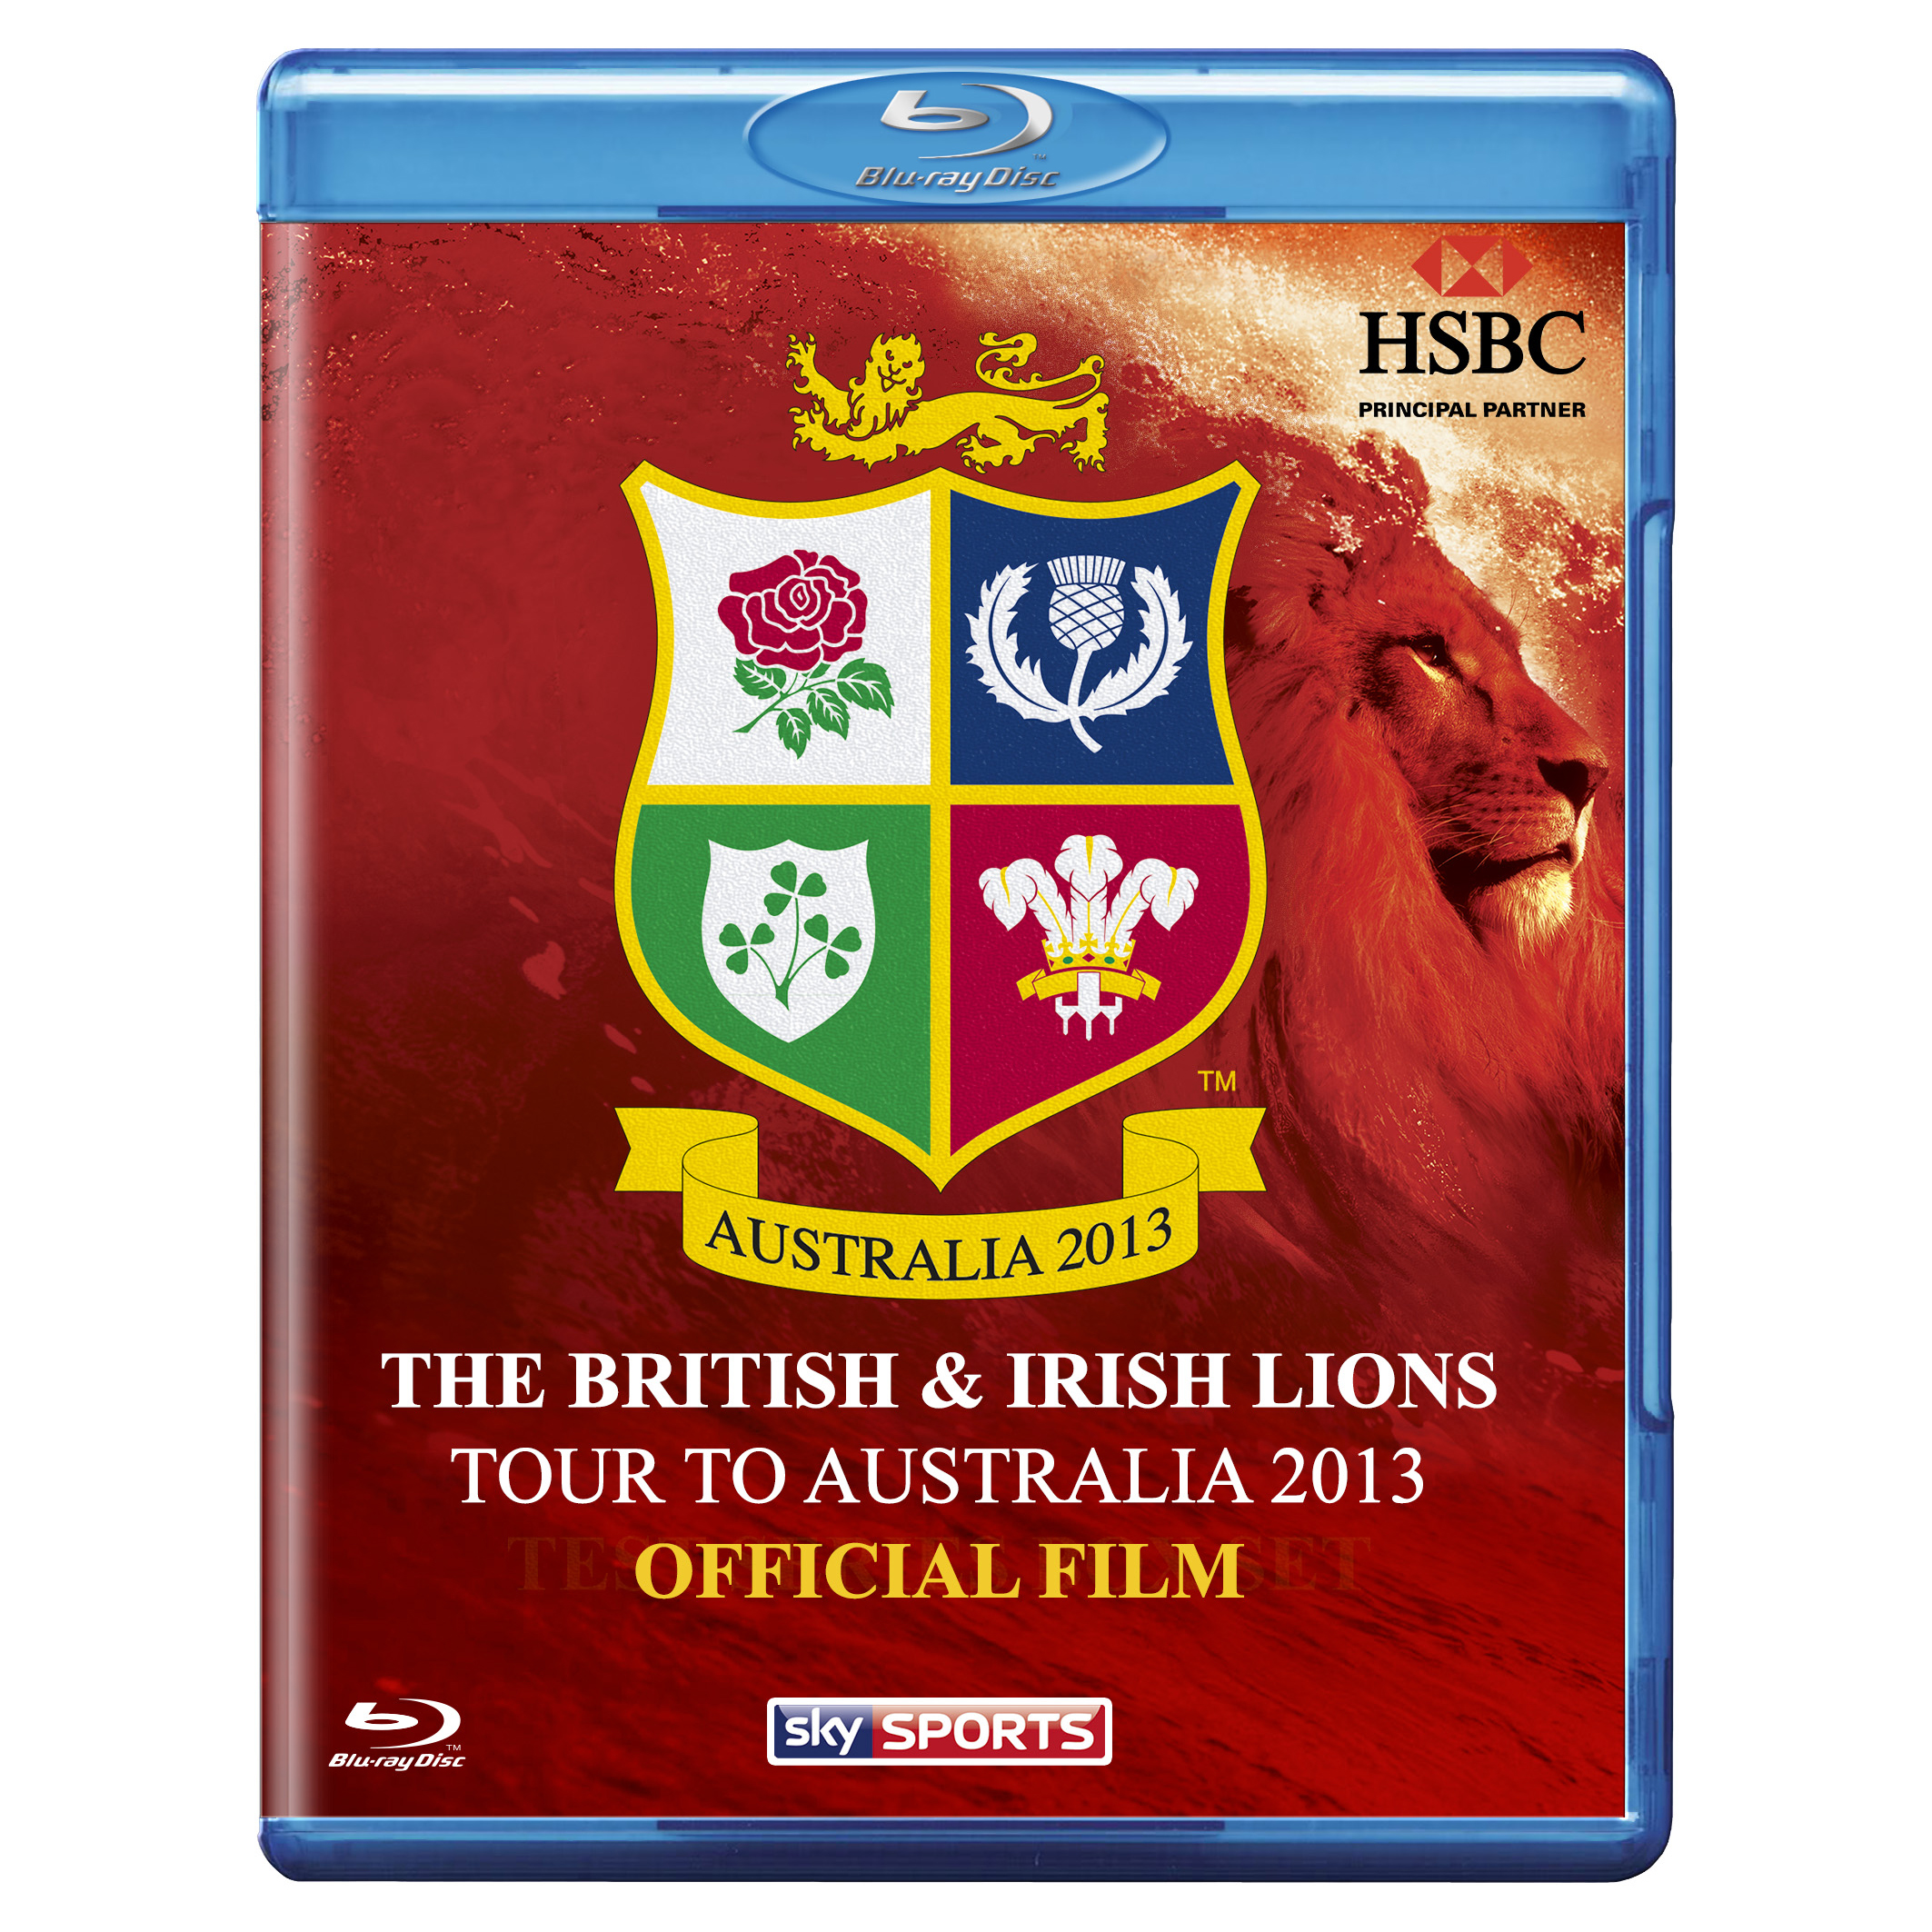 British & Irish Lions Tour to Australia 2013 Official Film - Blu-Ray